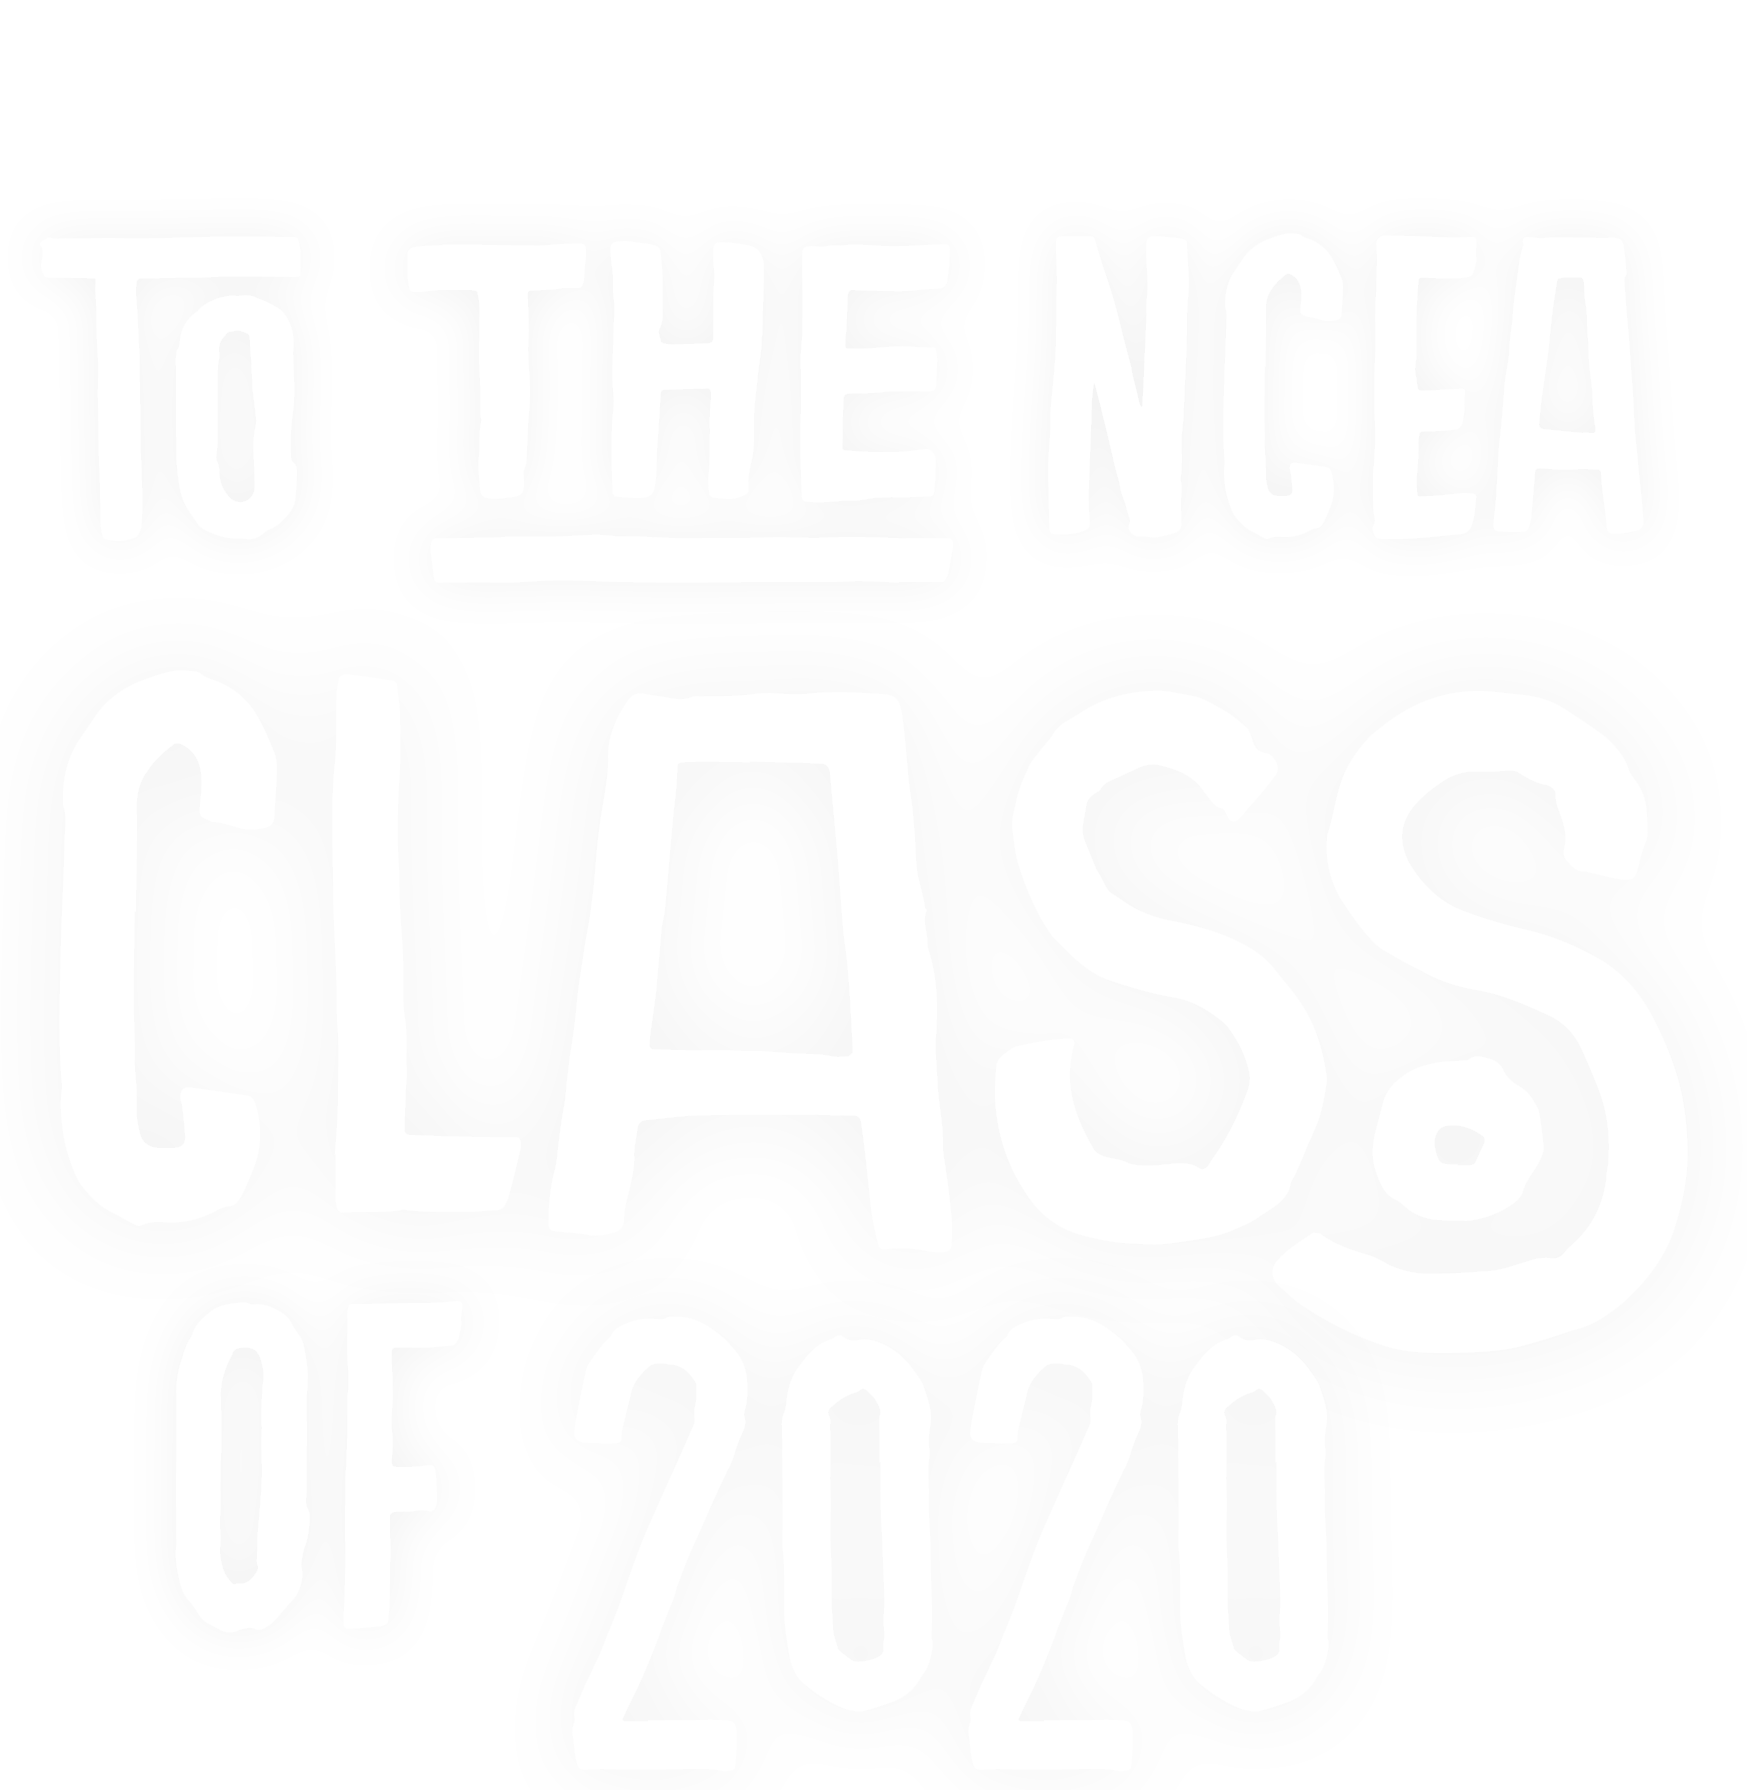 Congratulations to the NCEA class of 2020